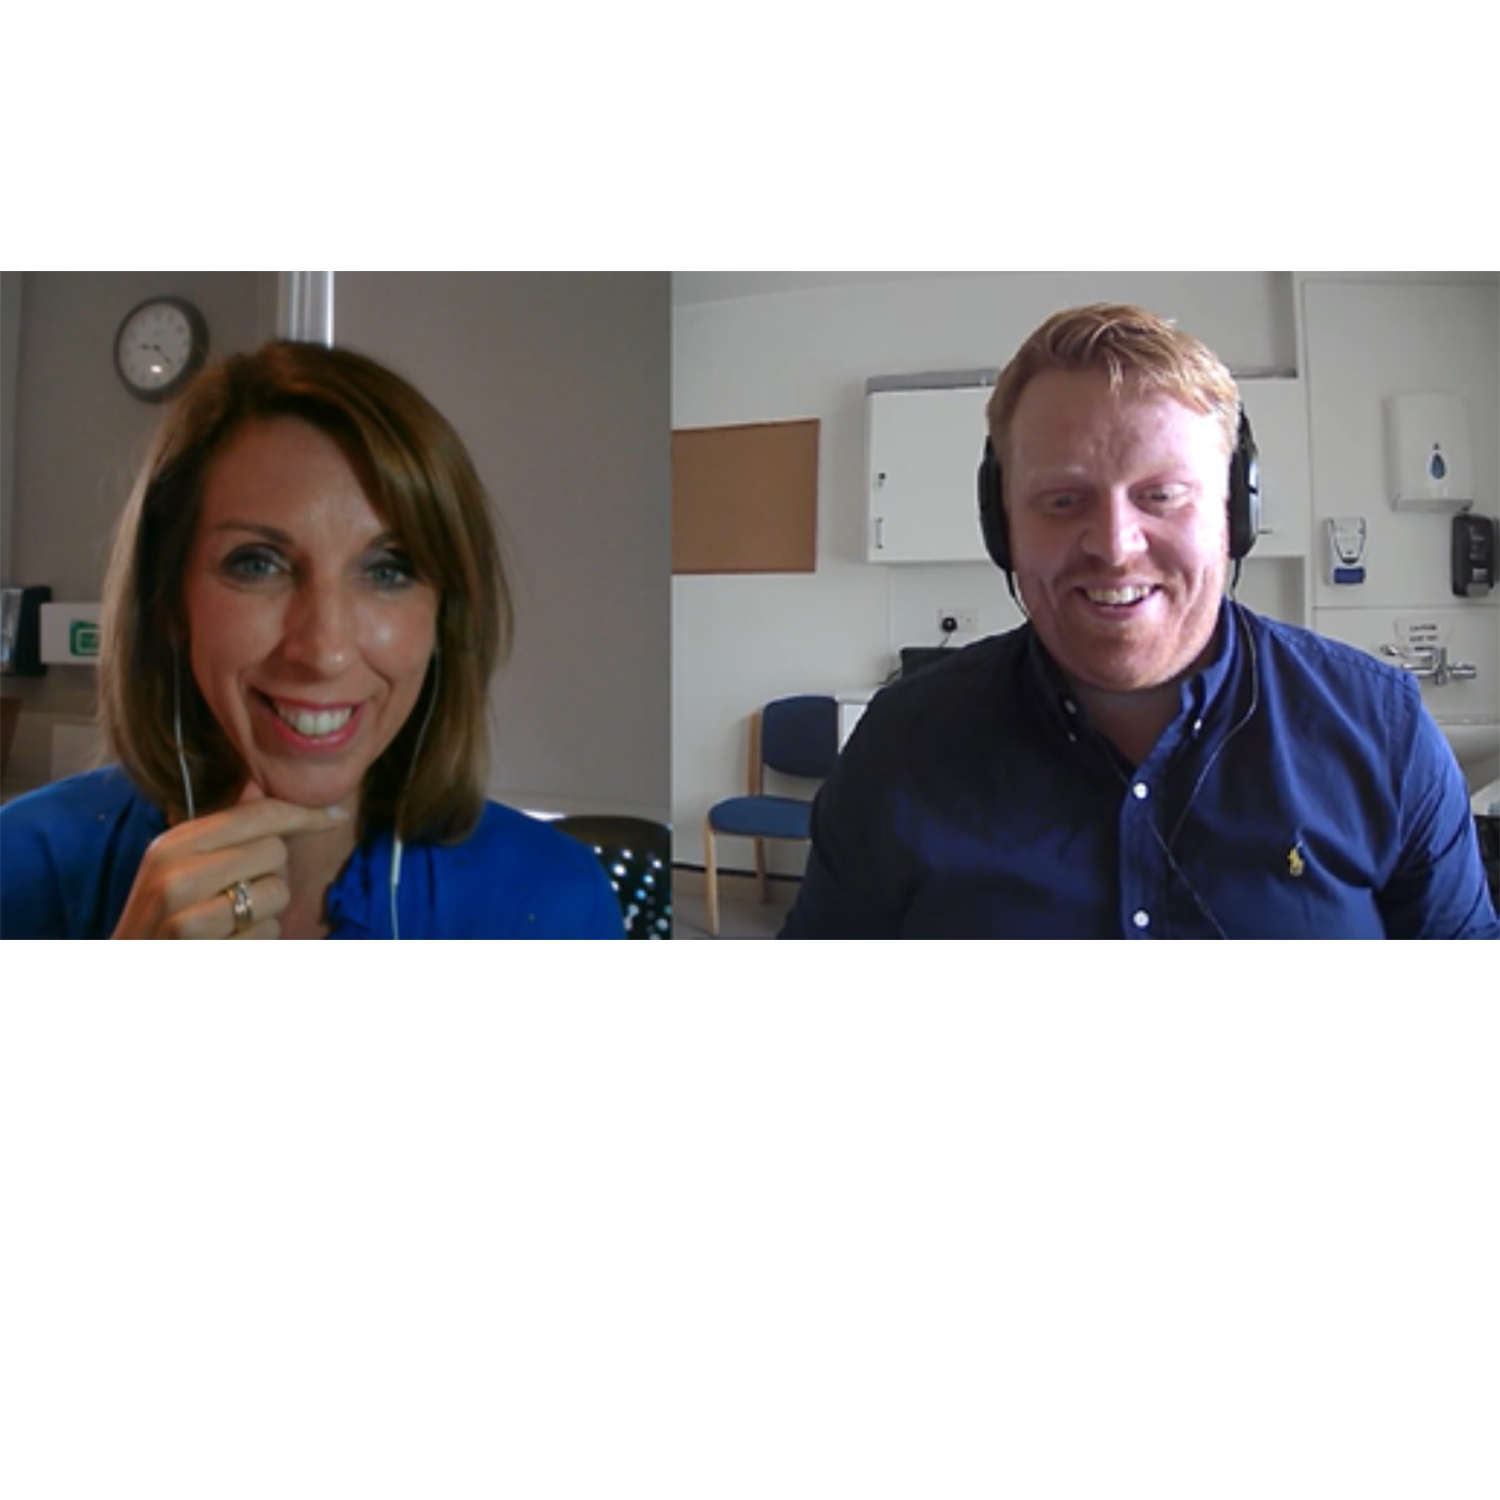 069 Managing Menopause as a New GP - Gregory Monk & Dr Louise Newson